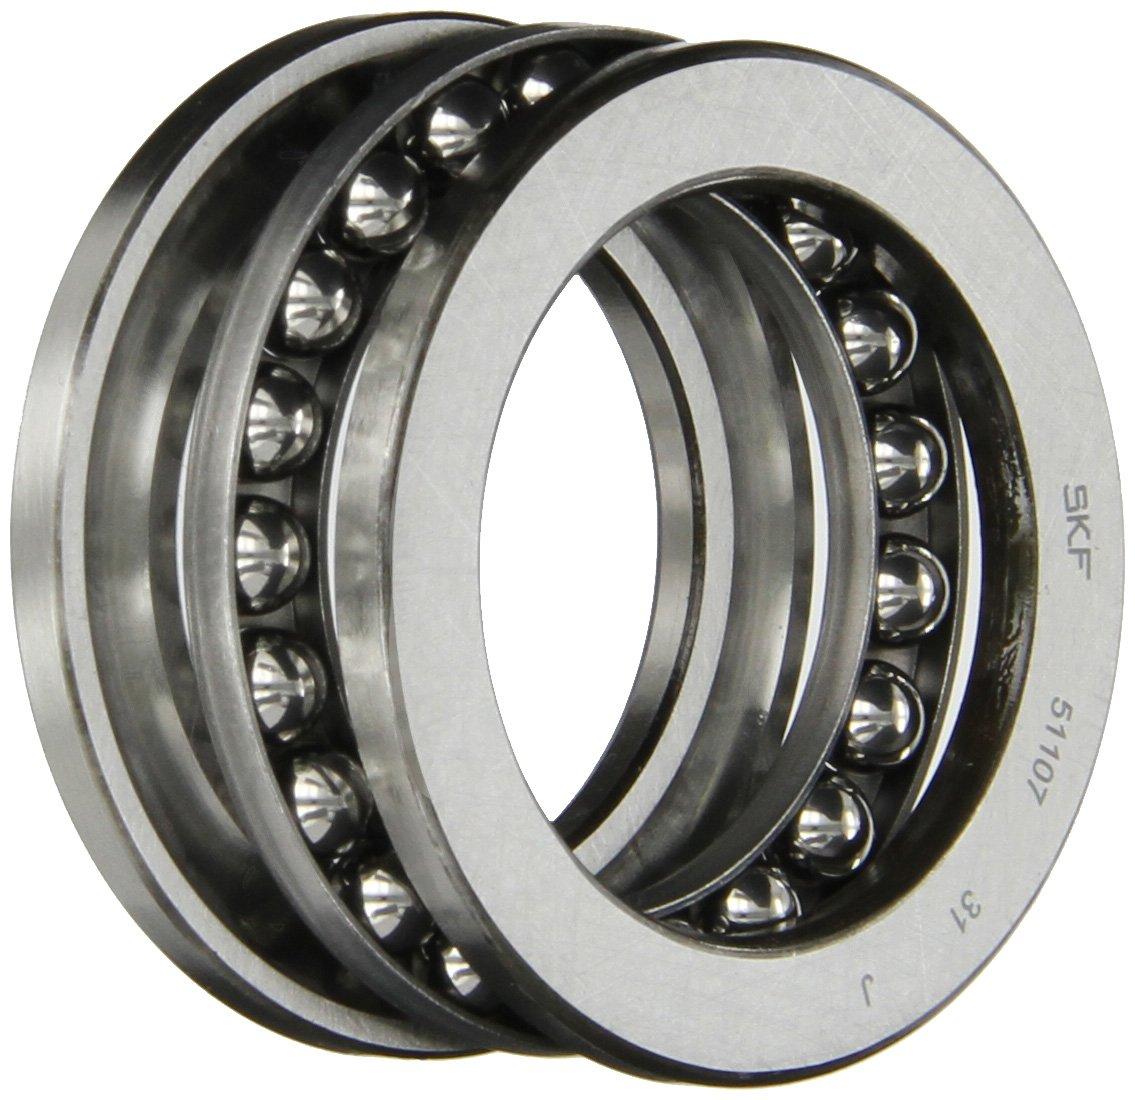 x 12mm OD 35mm x 52mm ID Thickness 51107 Axial Ball Thrust Bearing